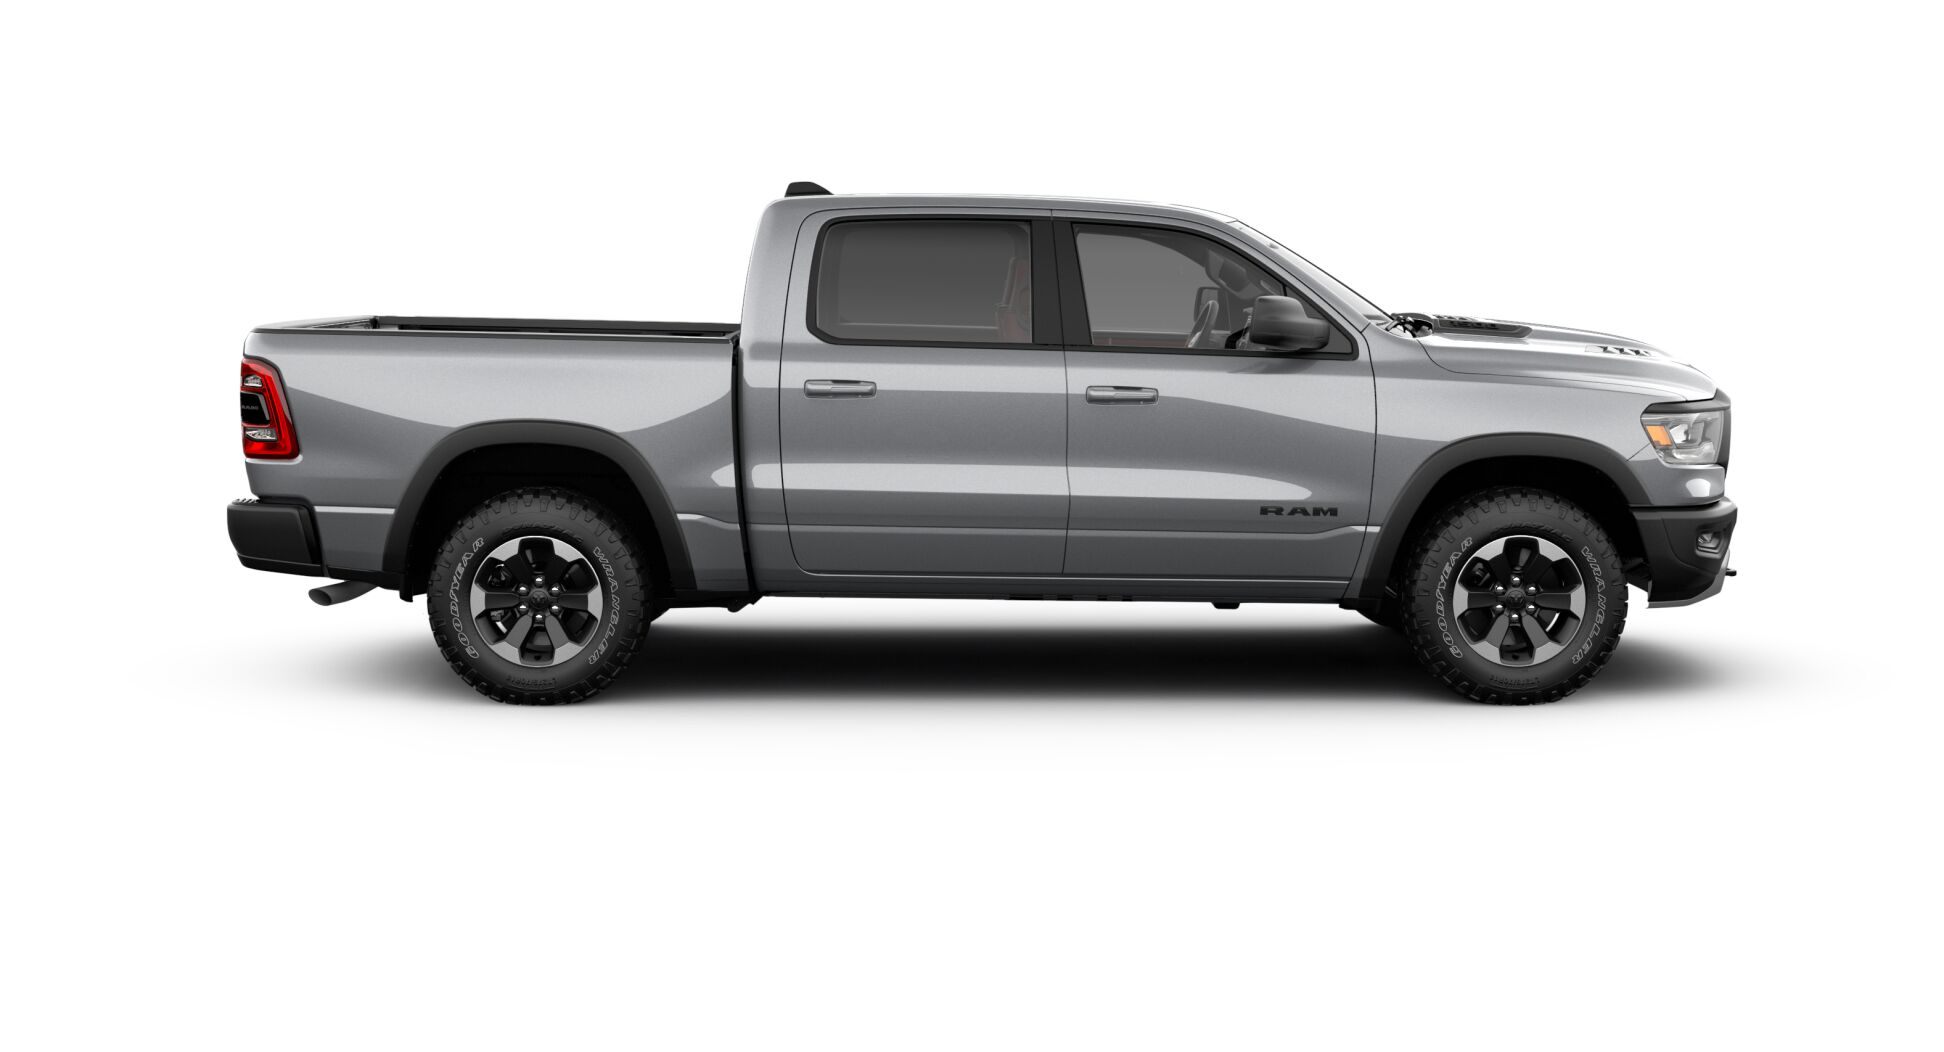 2020 Ram 1500 Rebel Side Exterior Silver Picture